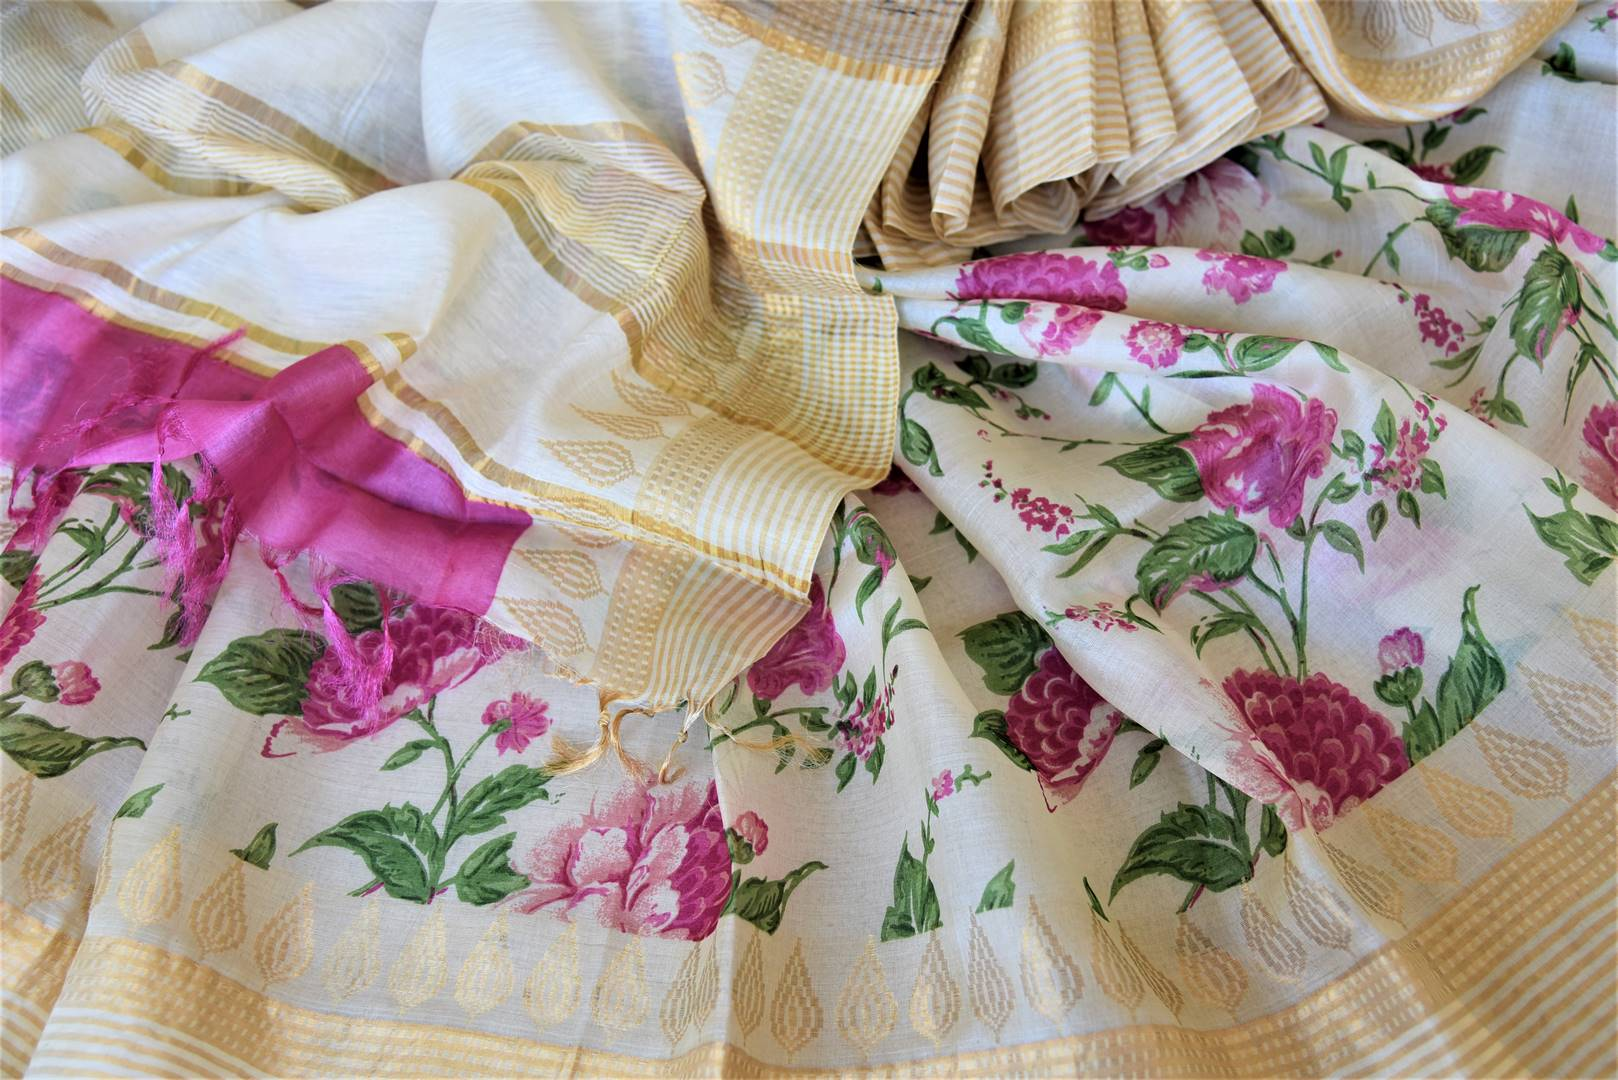 Shop charming off-white tassar sari online in USA with pink floral print. Be the talk of the occasions in exquisite tassar sarees, handwoven silk saris from Pure Elegance Indian fashion store in USA. -details